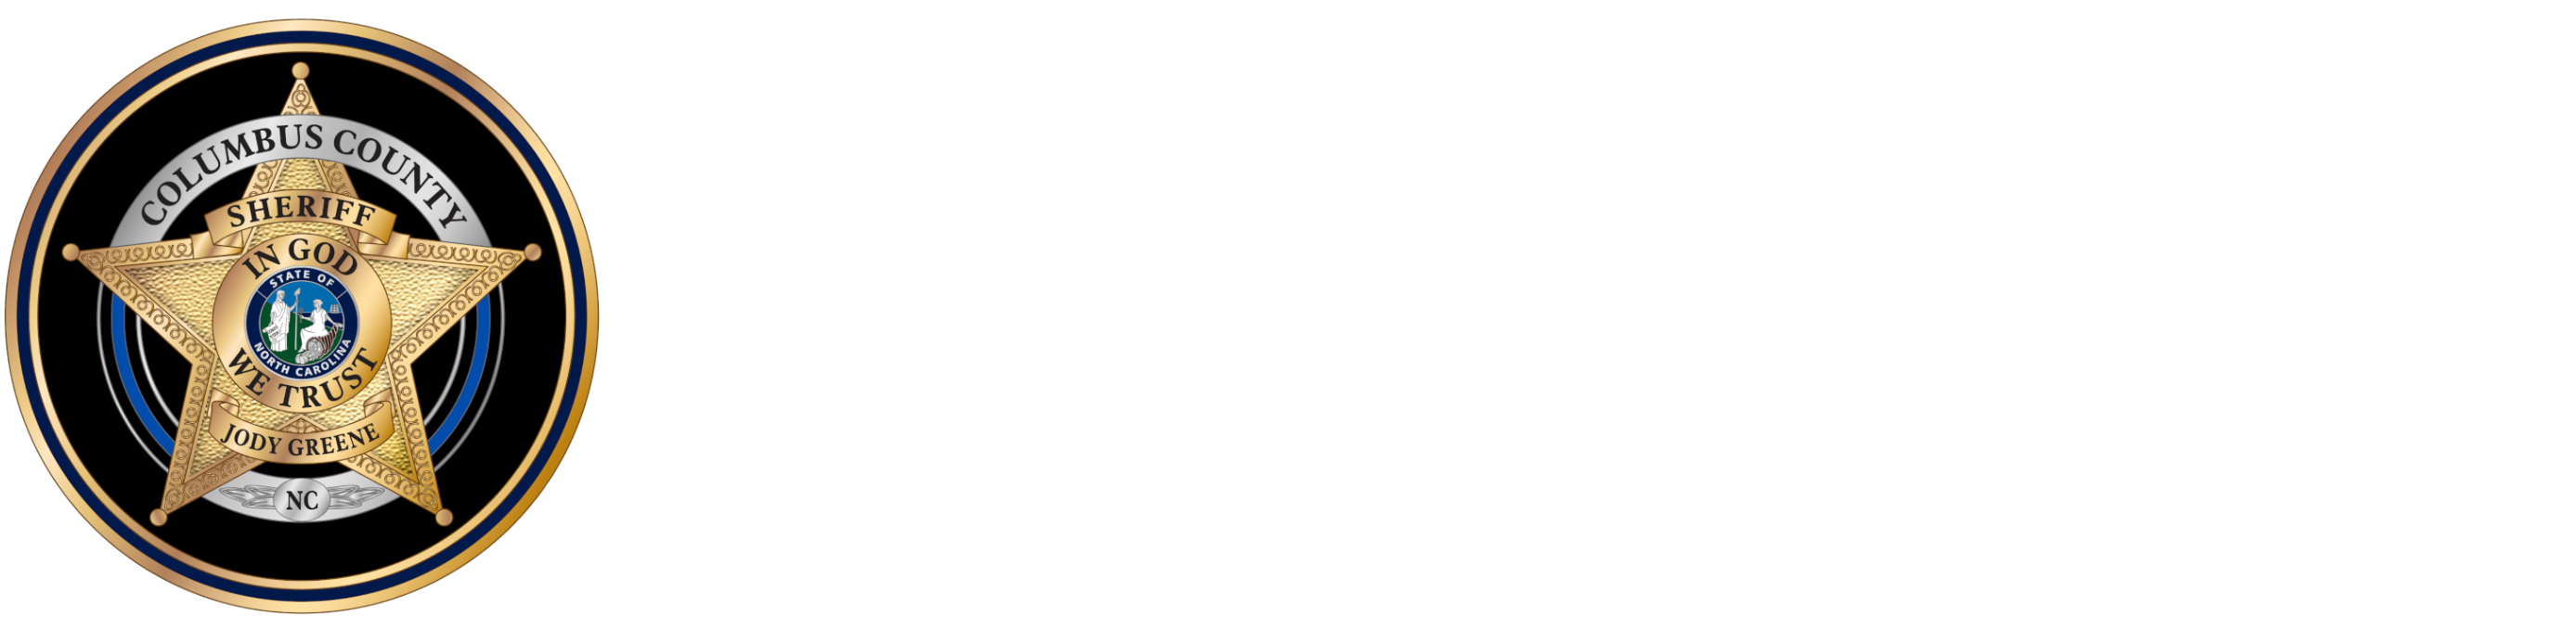 Columbus County Sheriff's Office